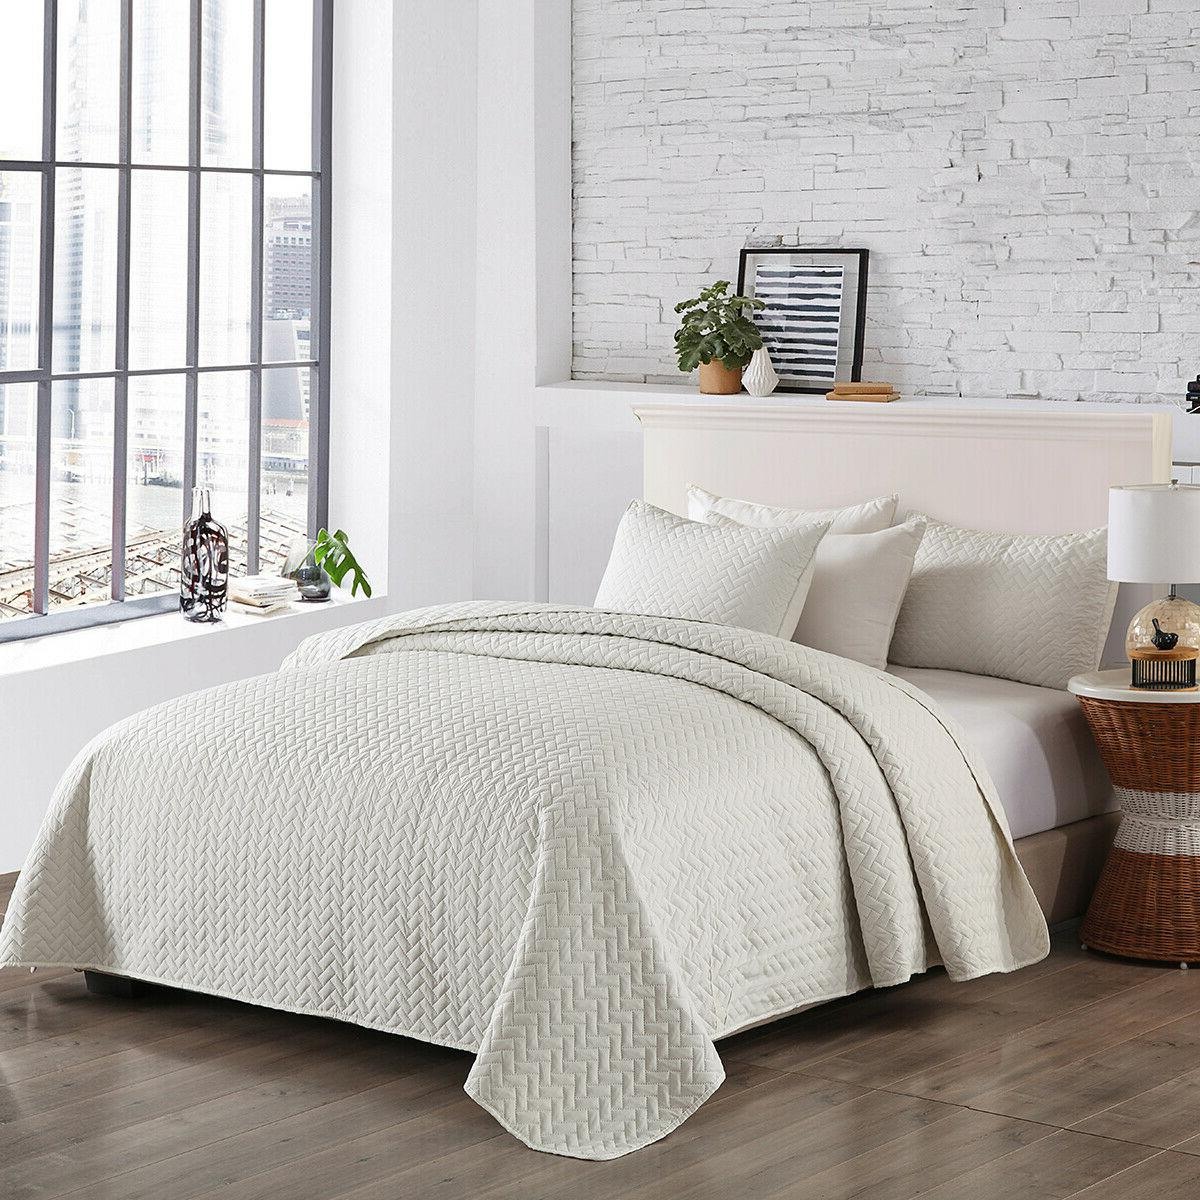 3-Piece Bedspread Coverlet Set Quilt Set Solid Color Queen/K